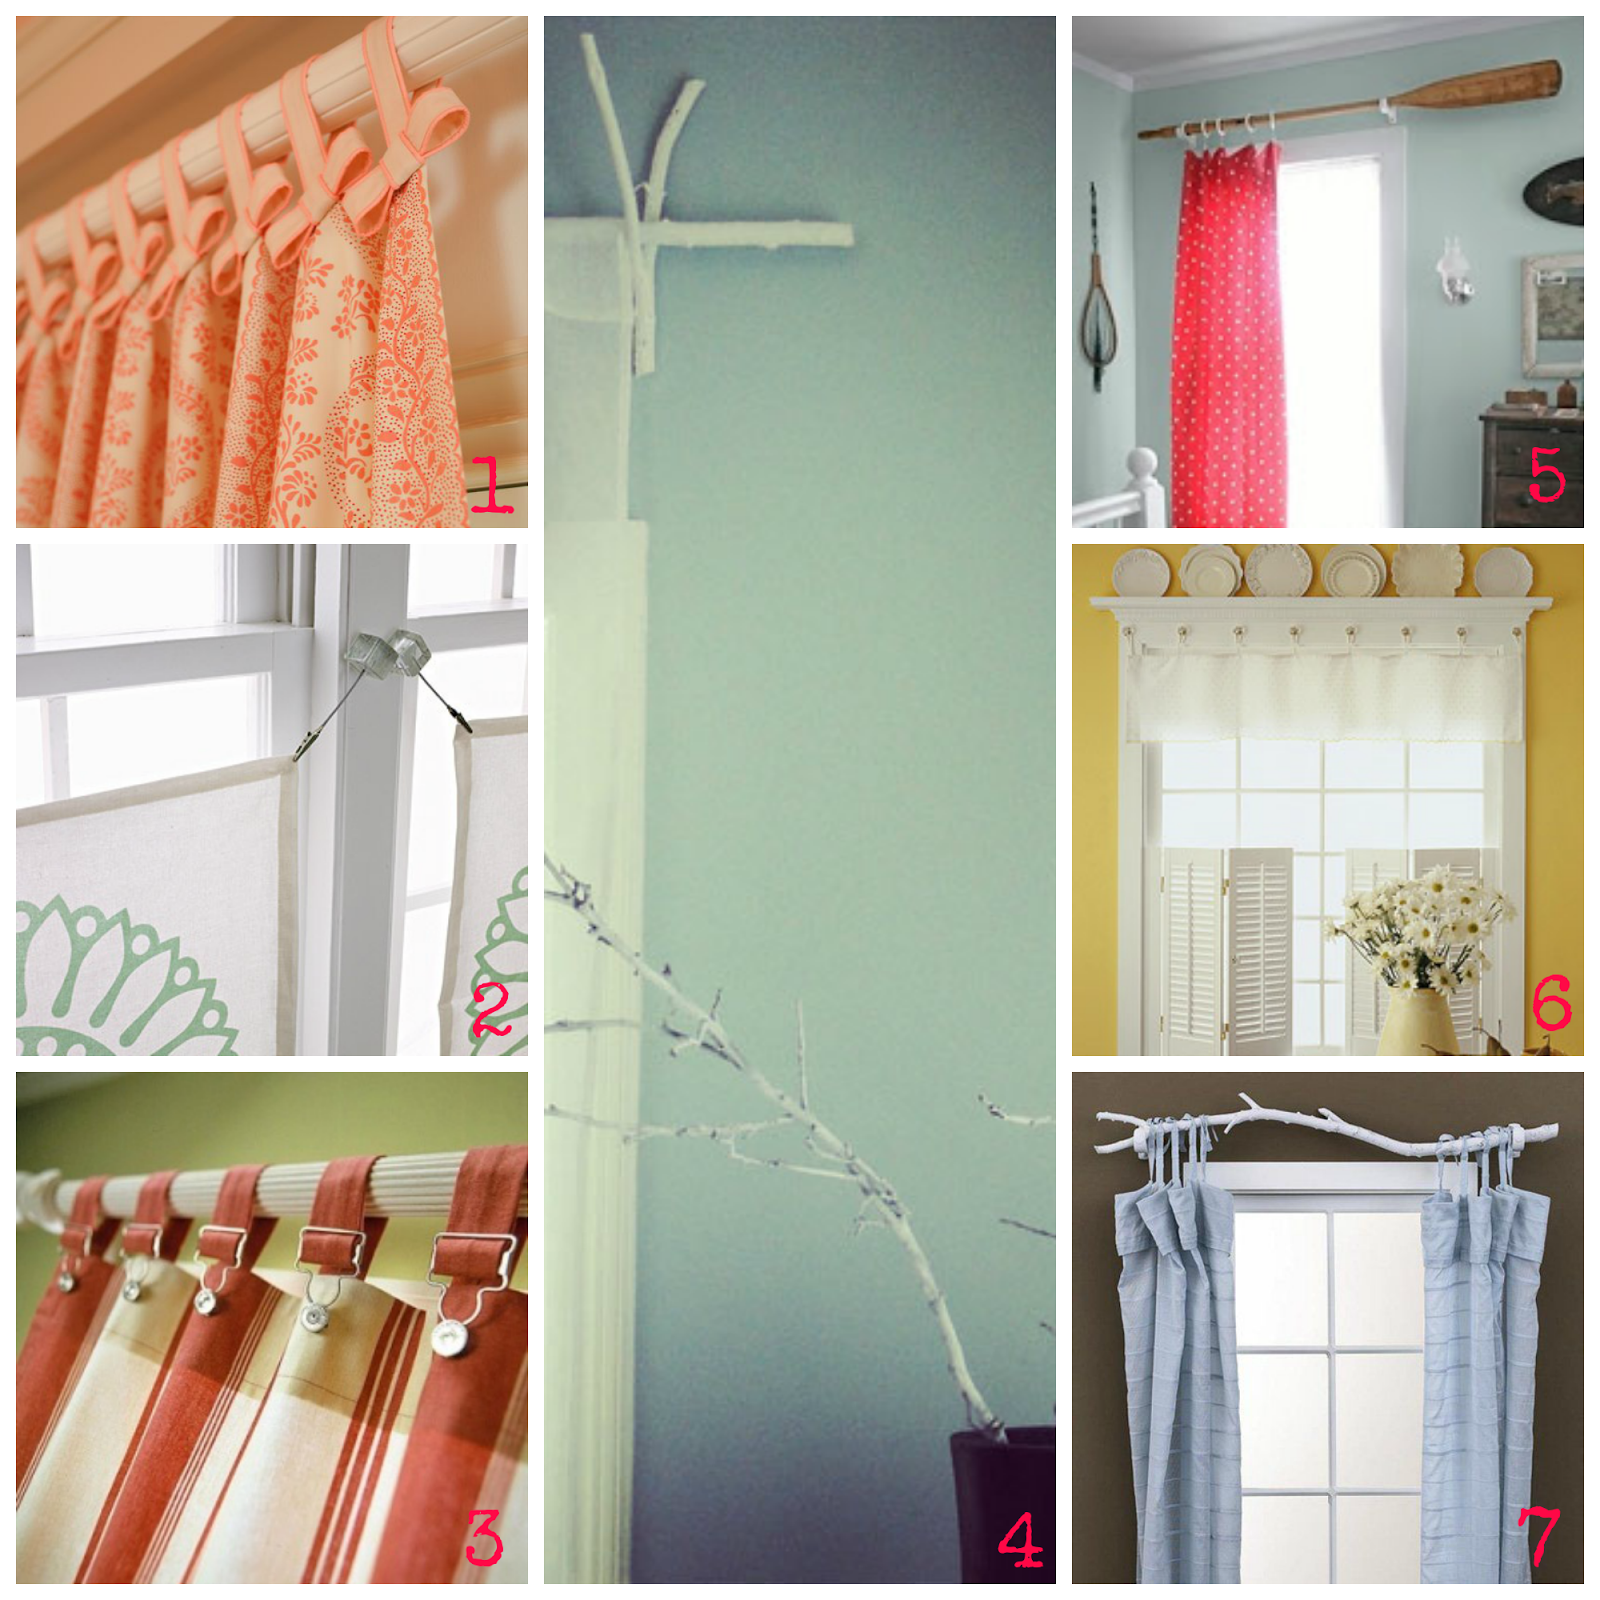 ideas y diy originales para decorar con cortinas